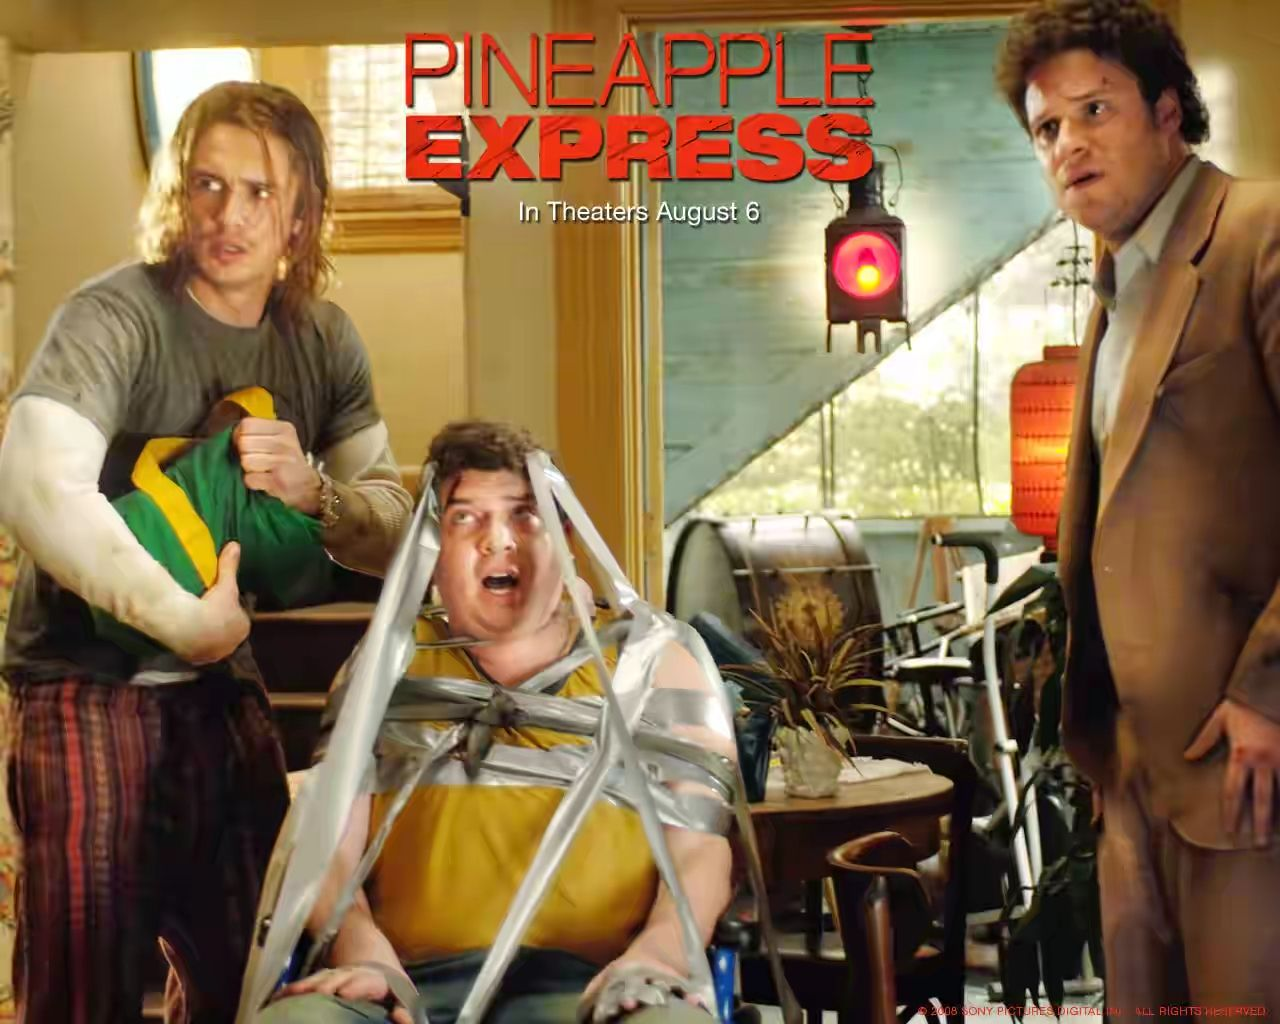 pineapple express full movie free download 480p